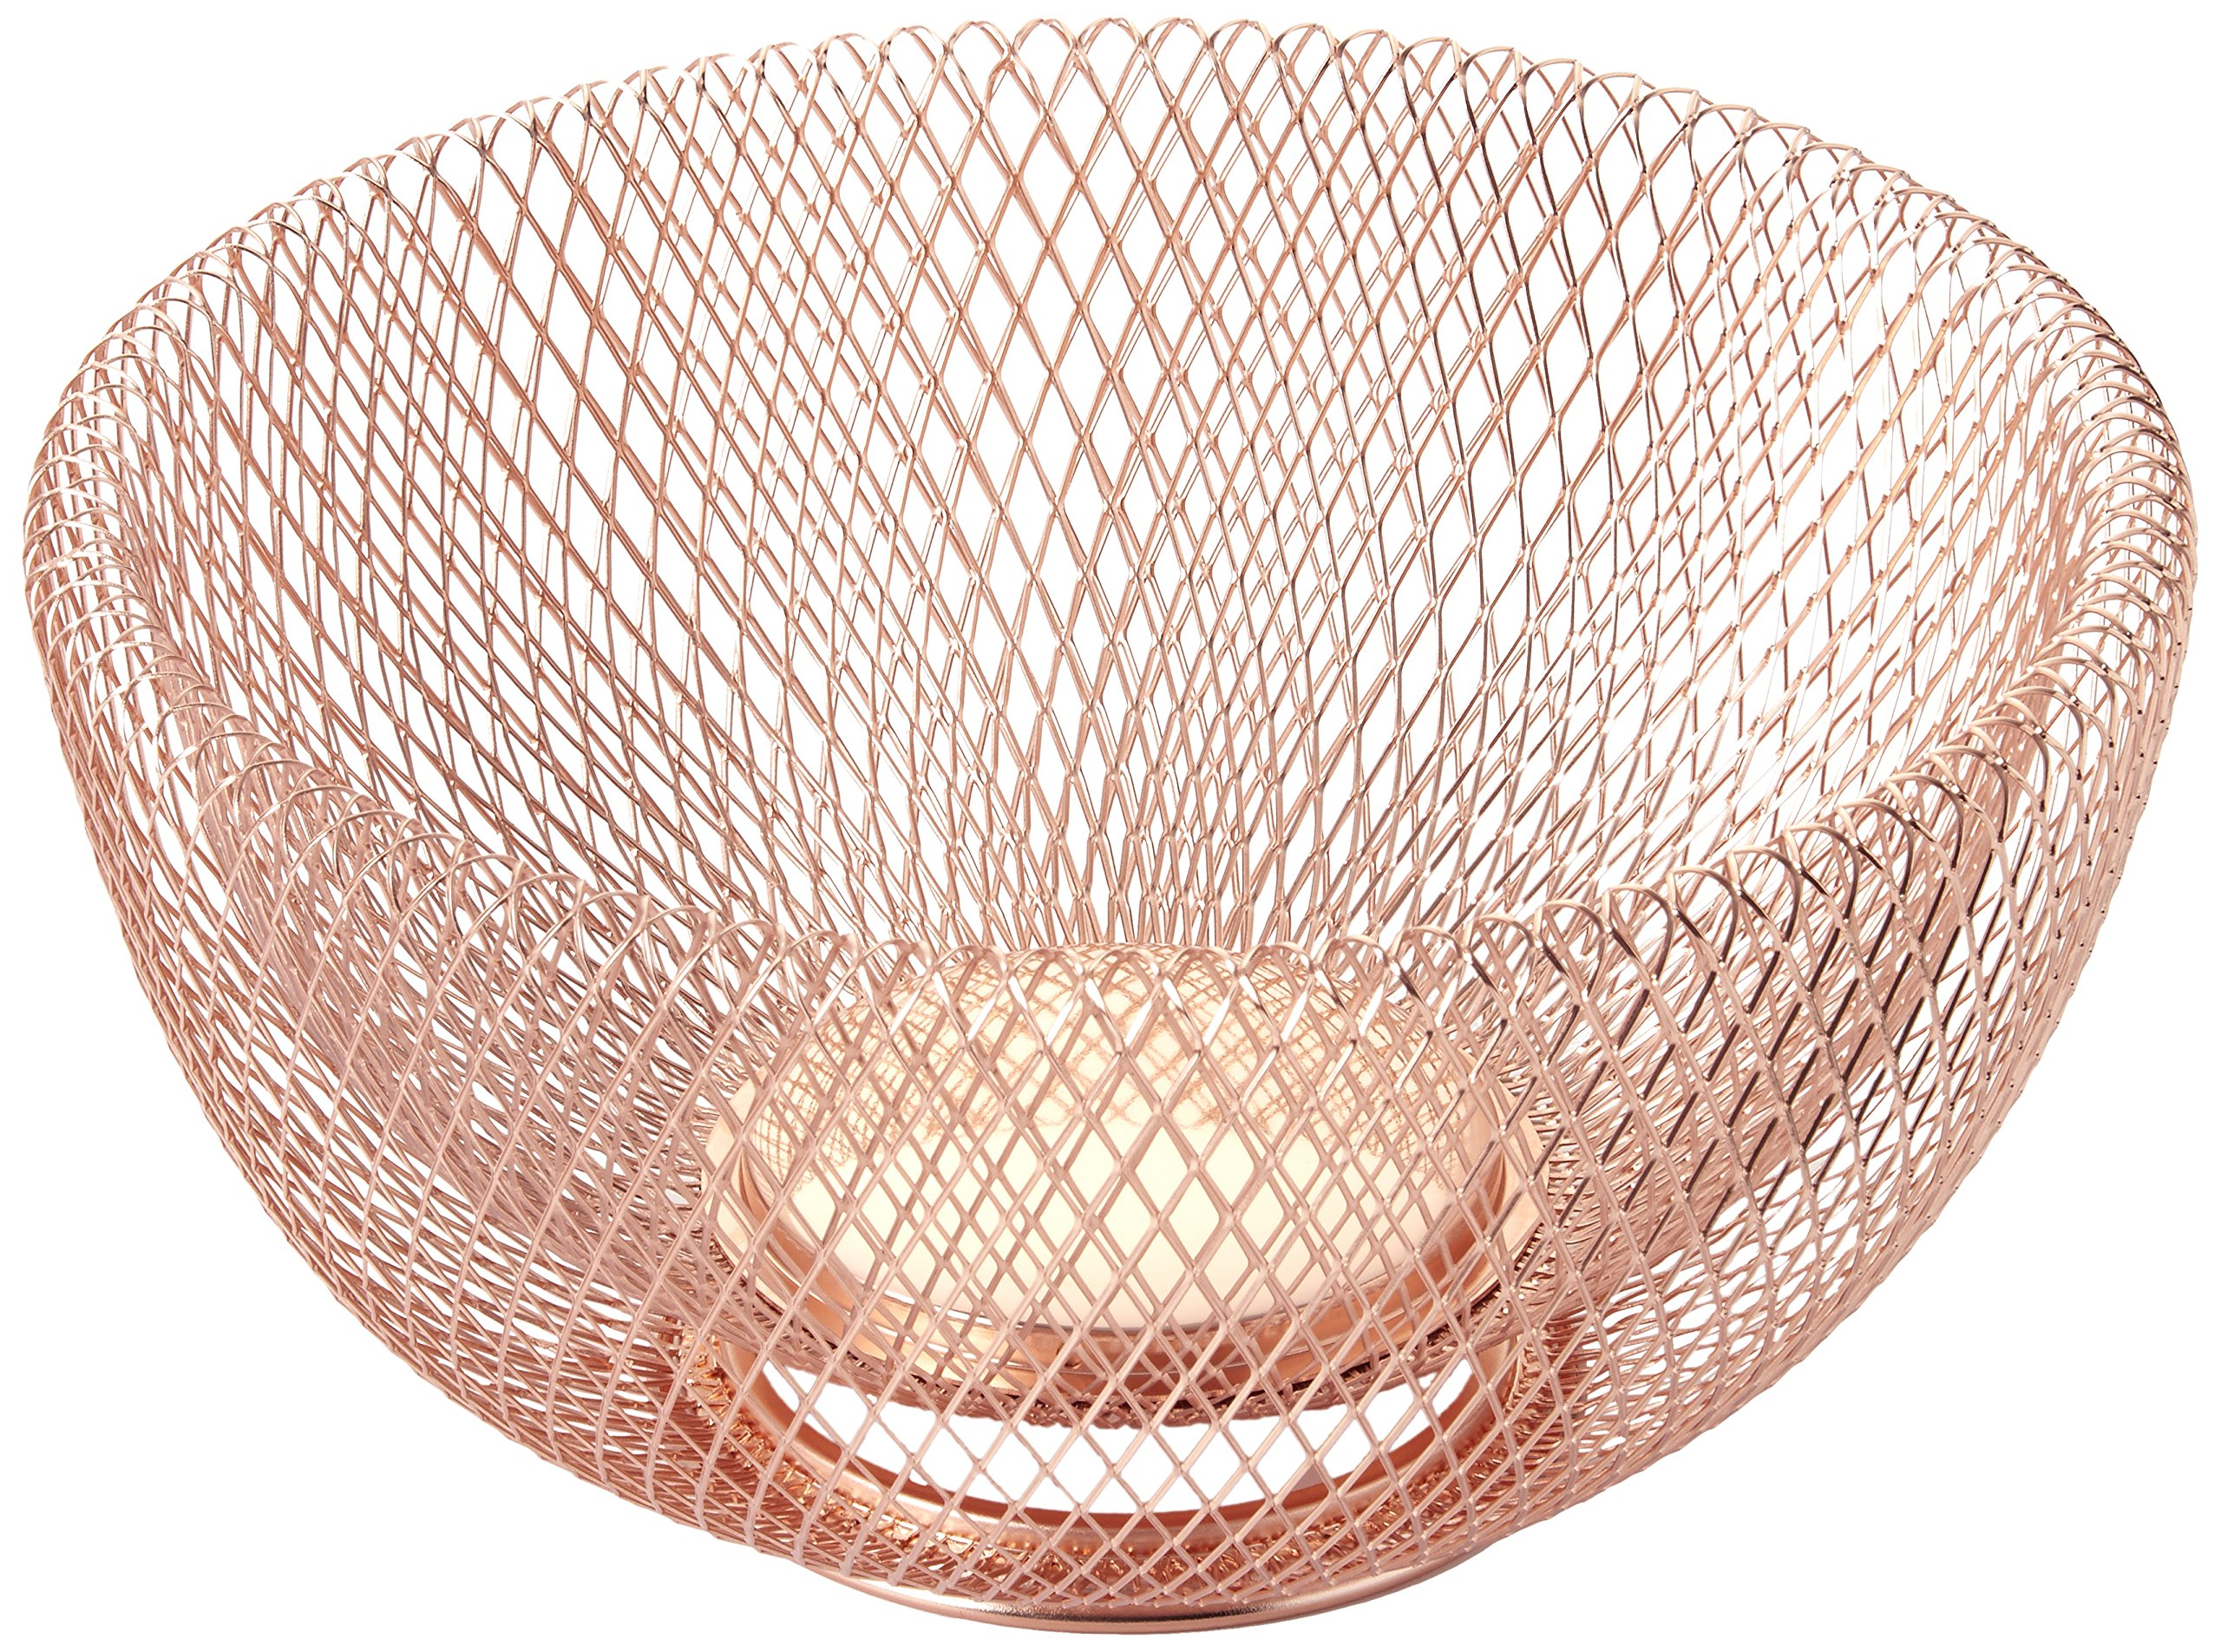 NIFTY 7510COP Double Wall Mesh Decorative and Fruit Bowl, 3.5 quart/10, Copper